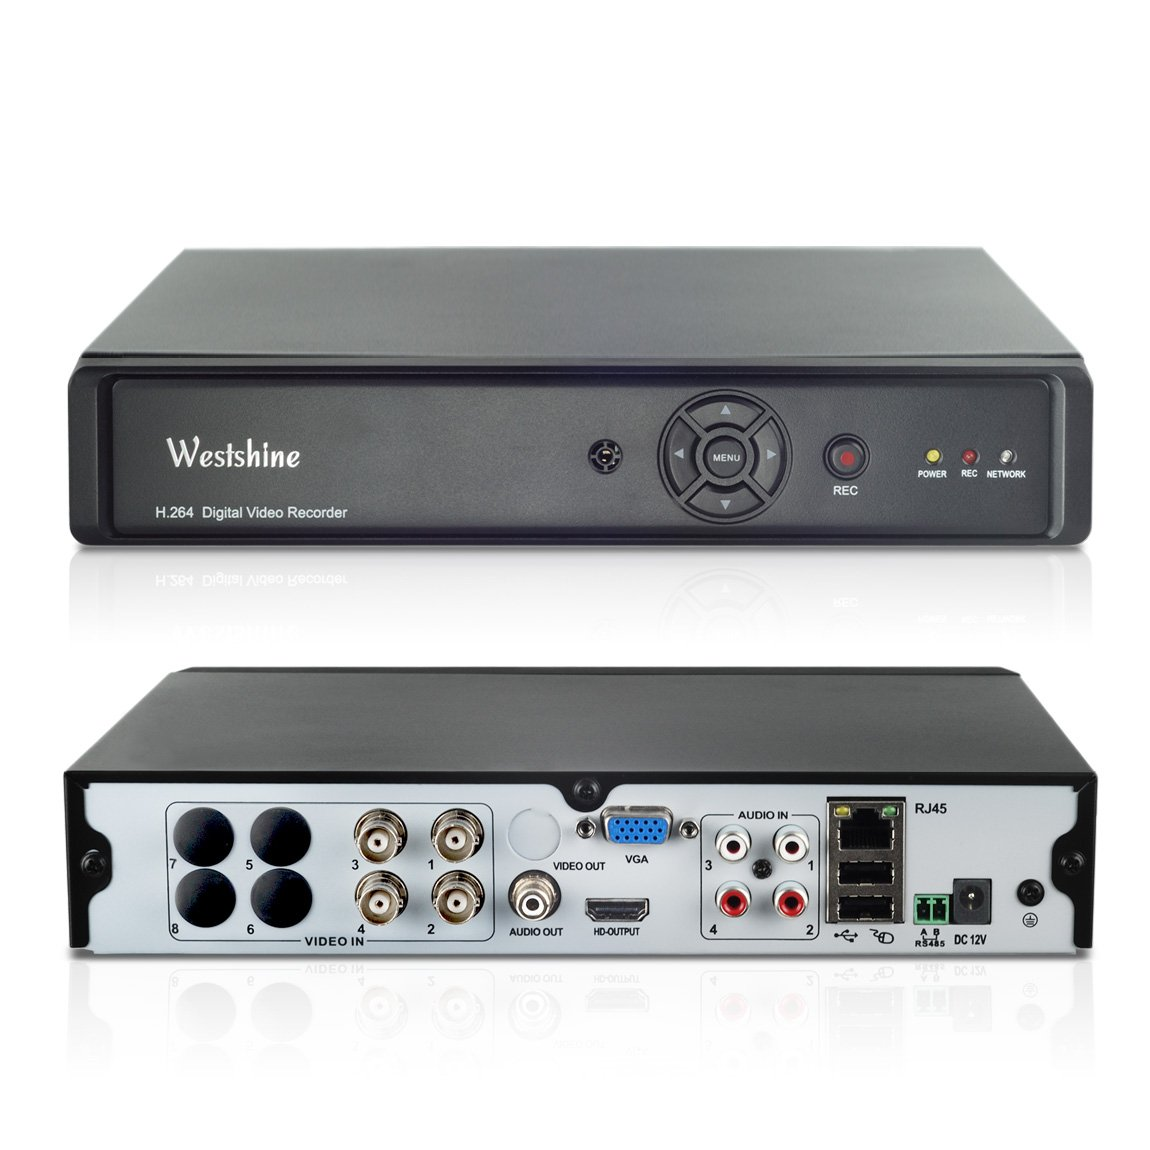 Westshine 4CH 5MP 5-IN-1 Hybrid DVR,H.264,25601920P Realtime CCTV Surveillance DVR, Support Onvif, HDMI Output, Motion Detection, Email Alert, Remote Access, P2P Cloud Network, QR Code Scan(NO HDD)